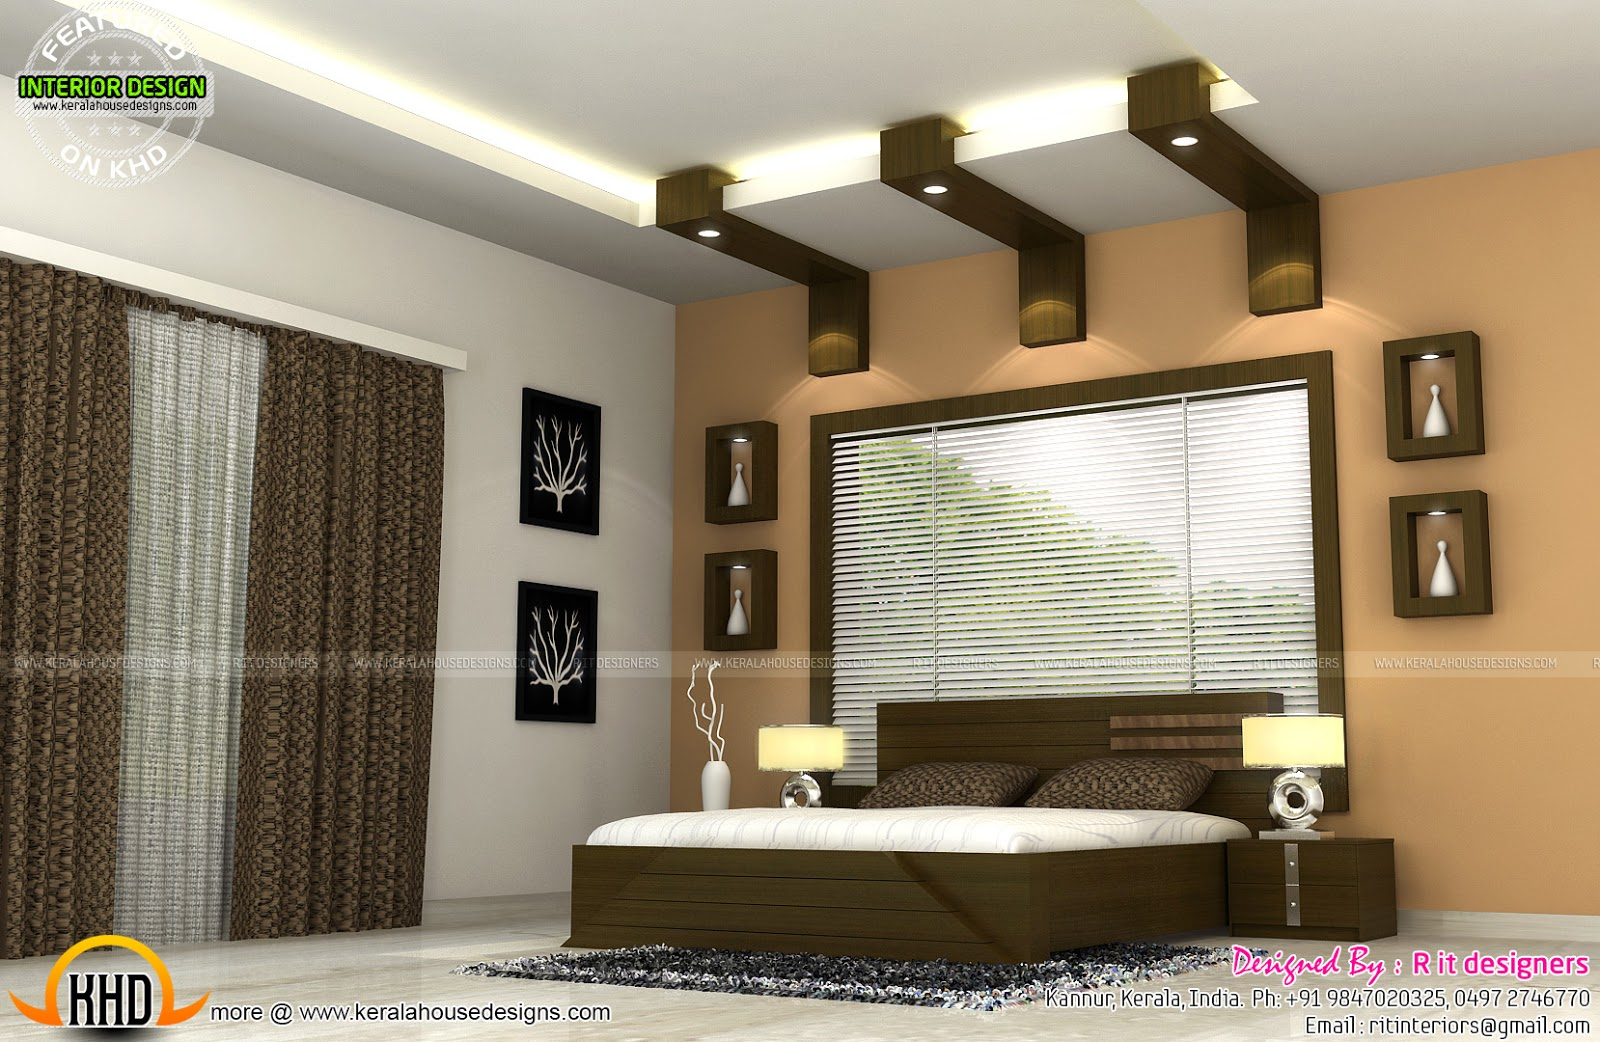 Interiors of bedrooms and kitchen kerala home design and for House interior design ideas